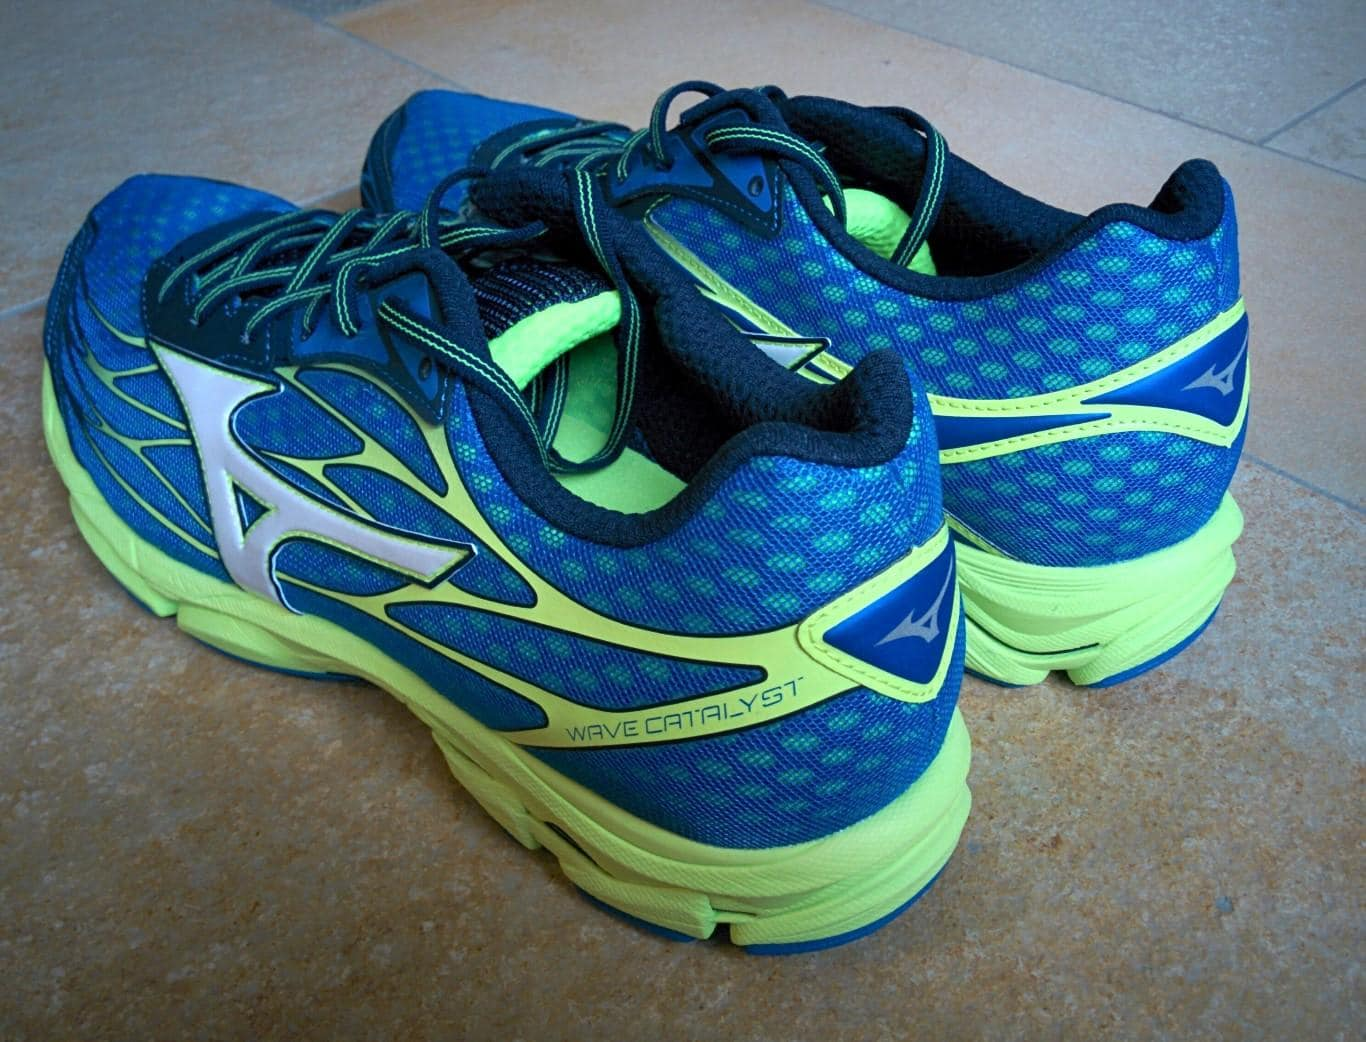 Mizuno Wave Catalyst - Ferse